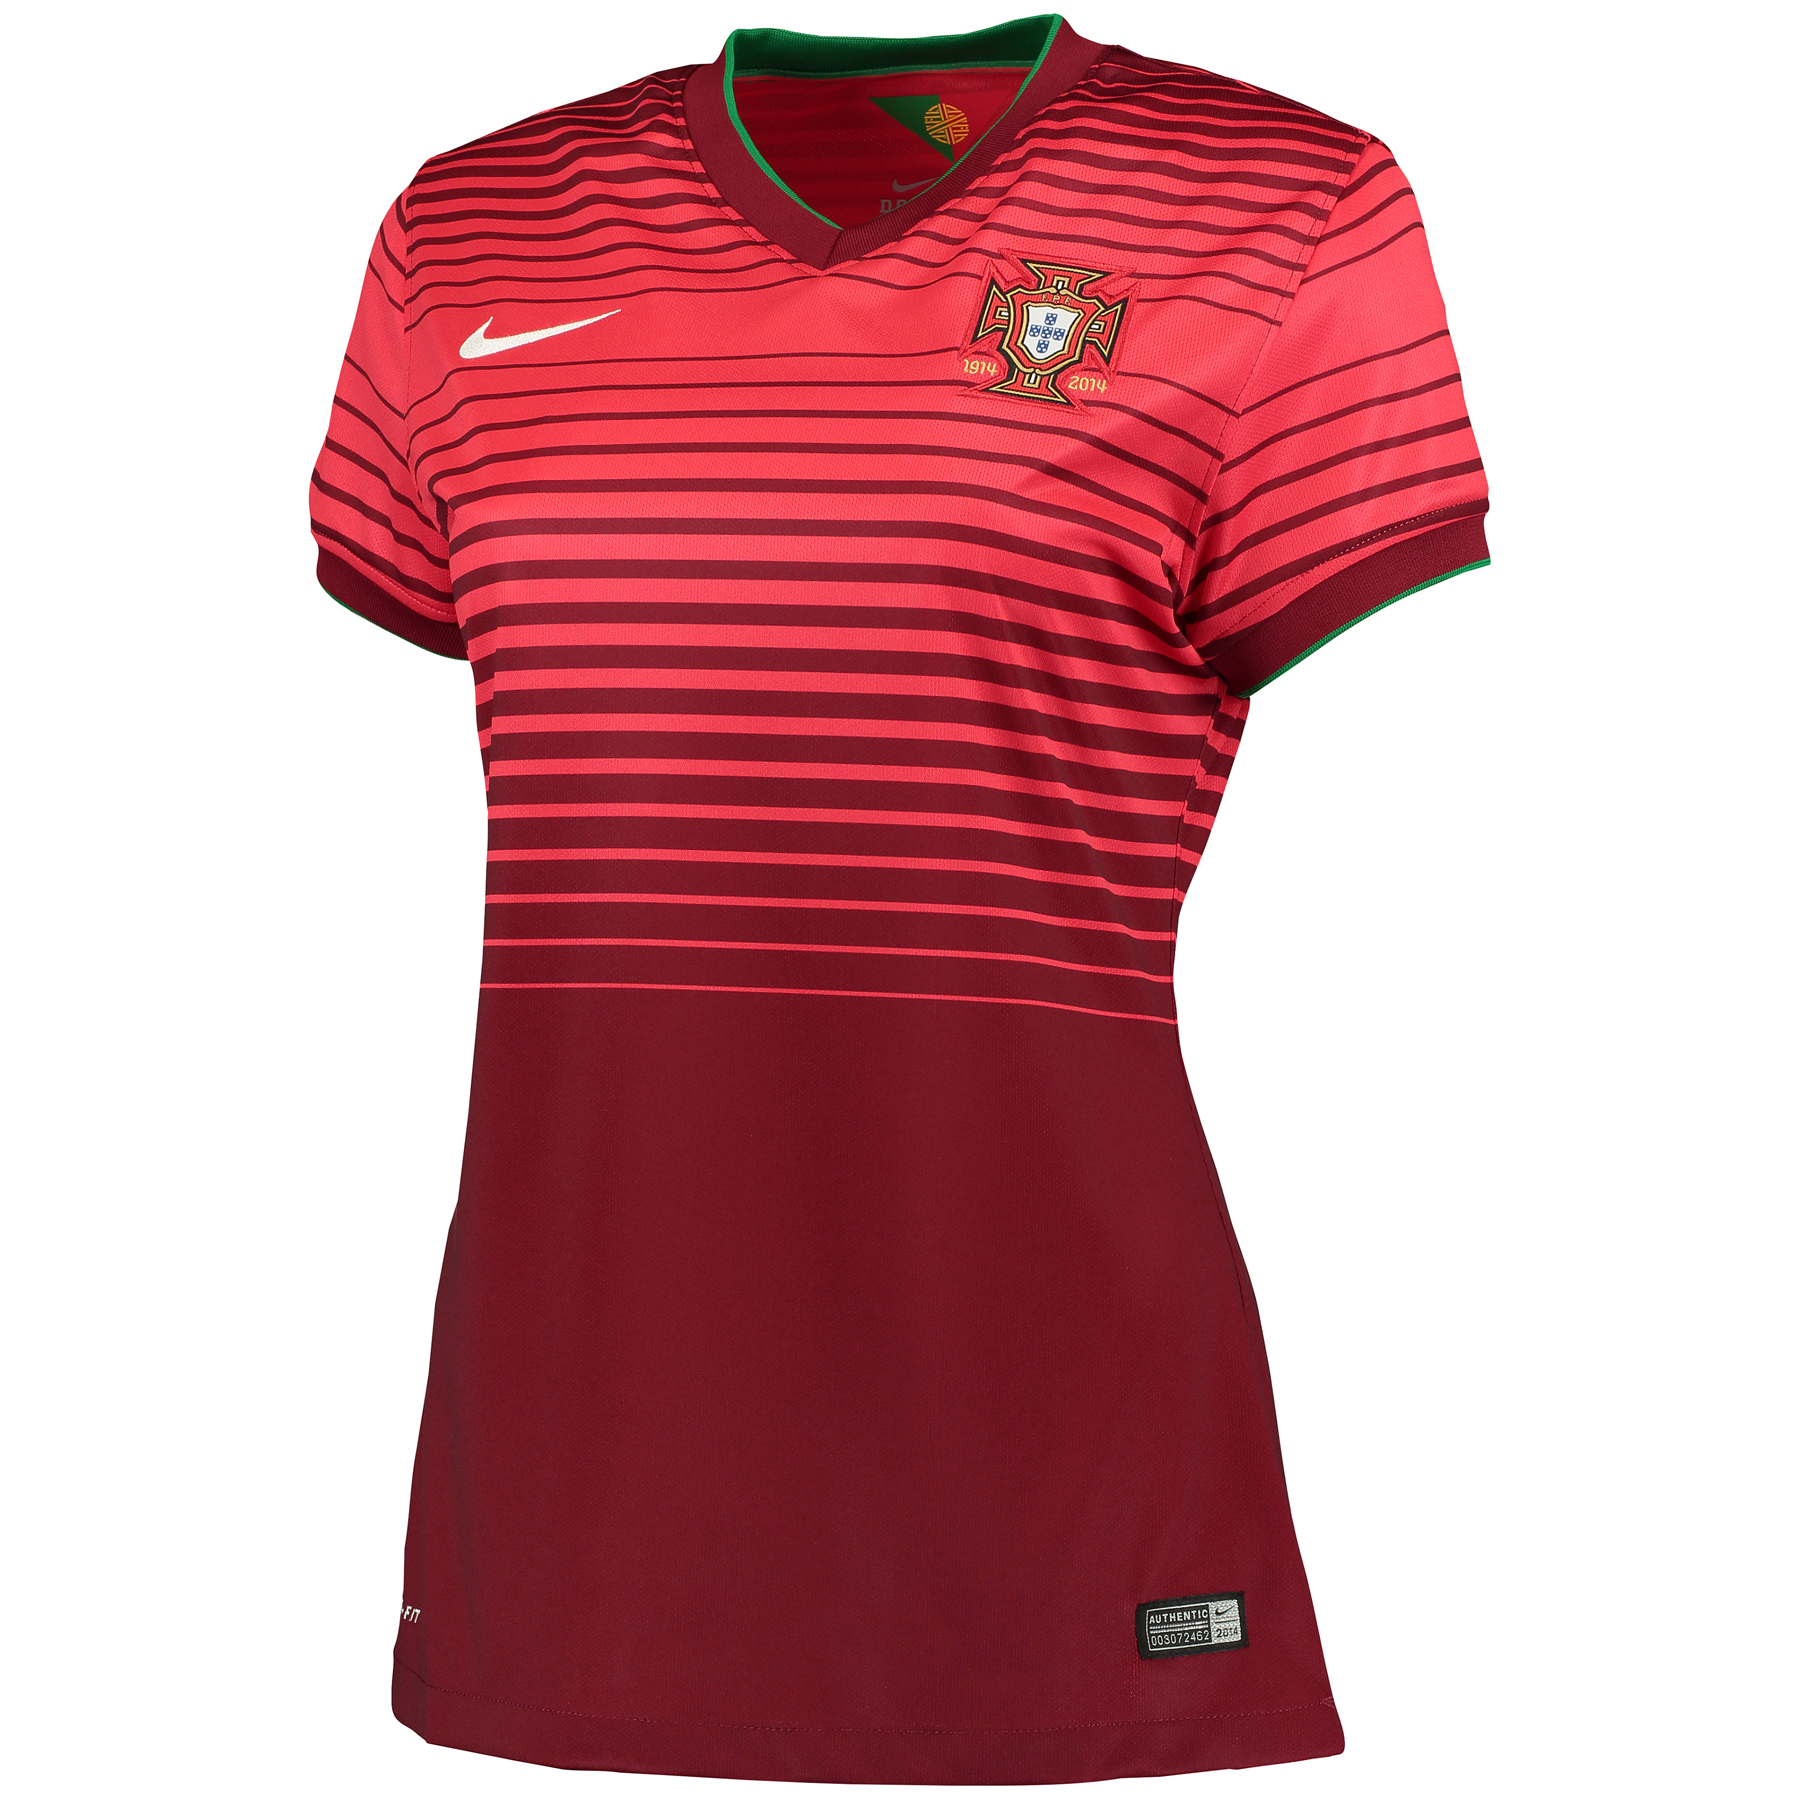 Portugal Home Shirt 2014/15 - Womens Red